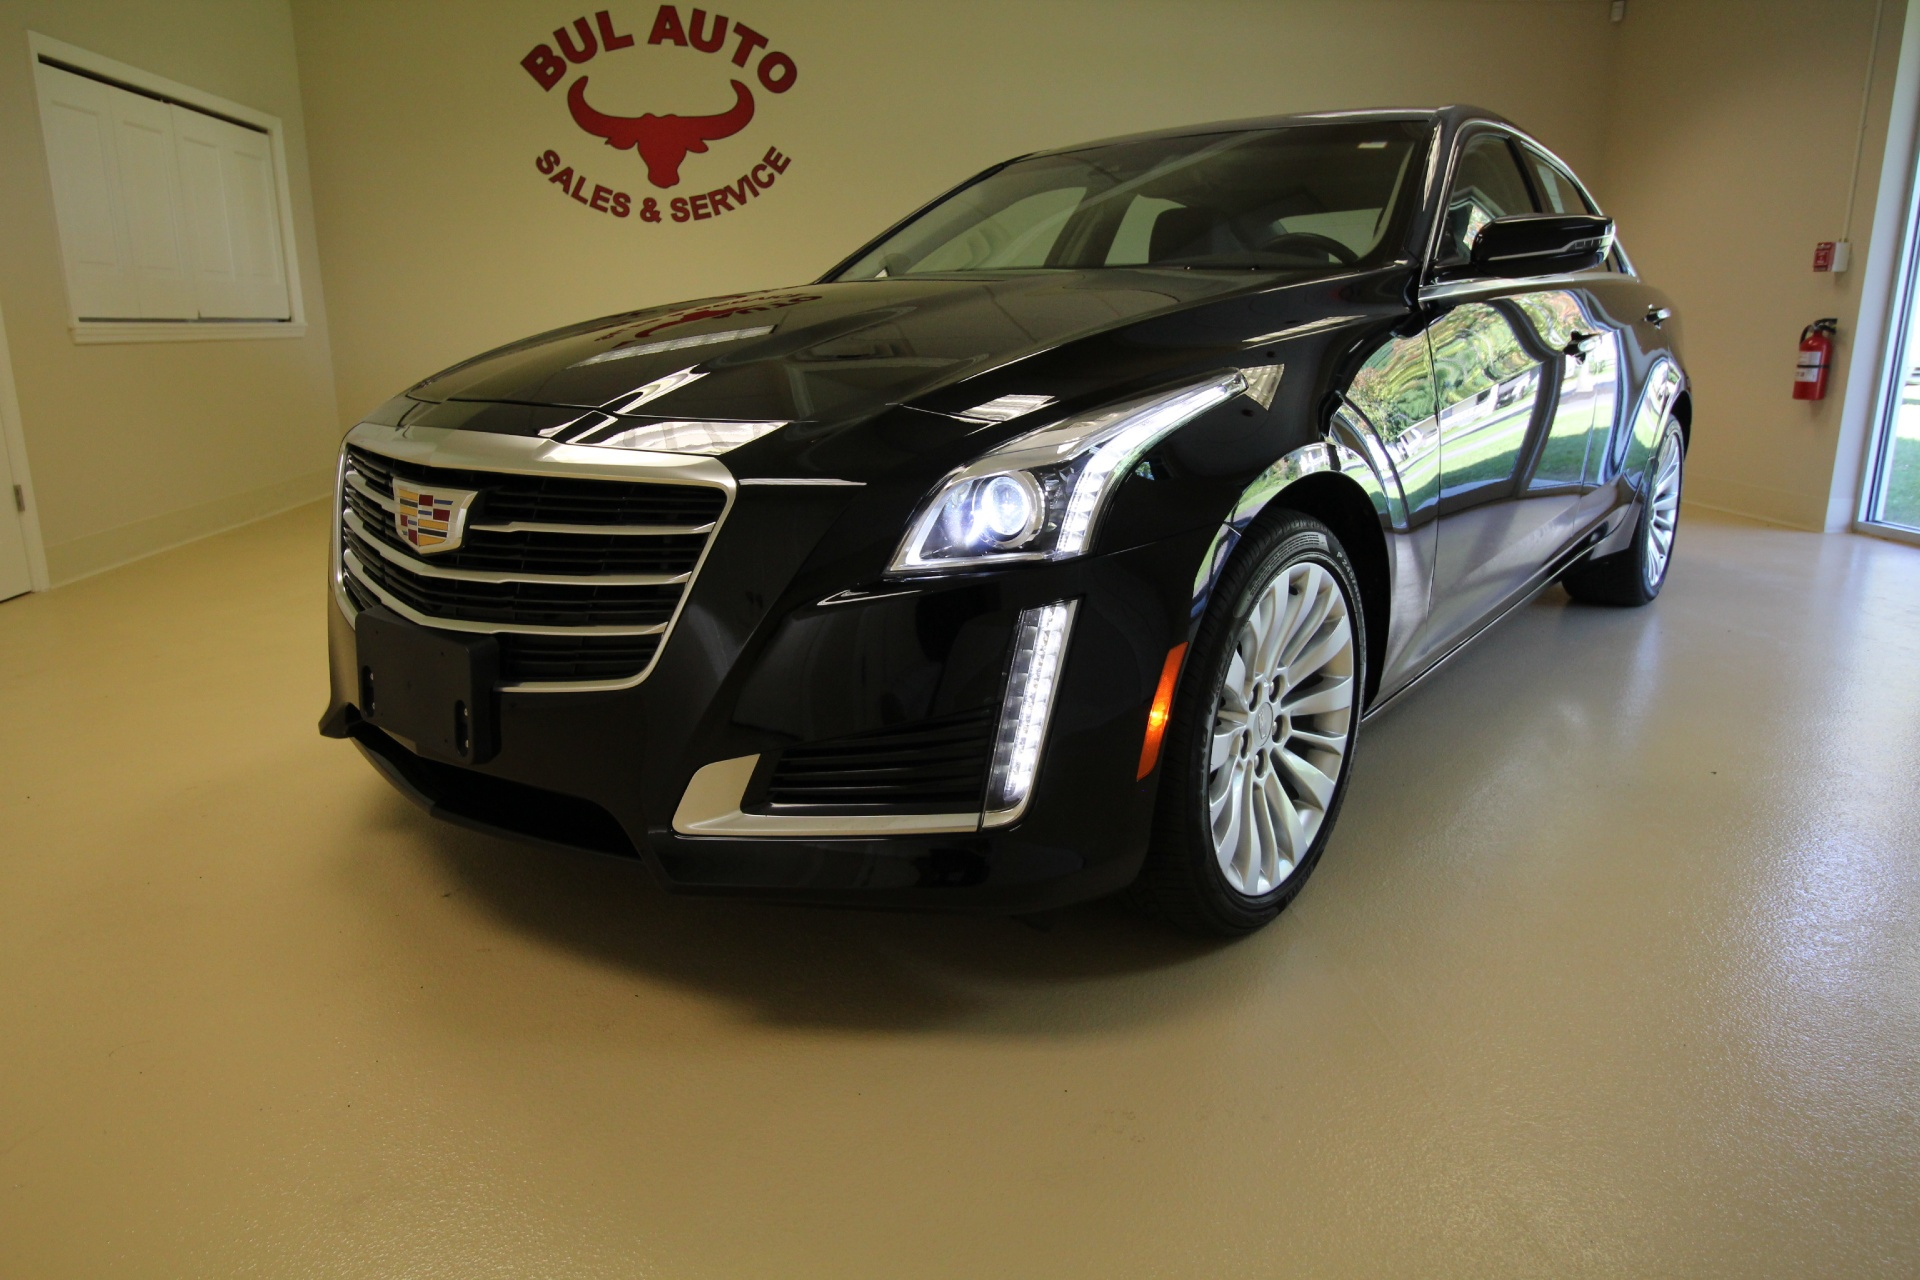 2015 cadillac cts 3 6l luxury collection awd loaded with options like new stock 16201 for sale. Black Bedroom Furniture Sets. Home Design Ideas